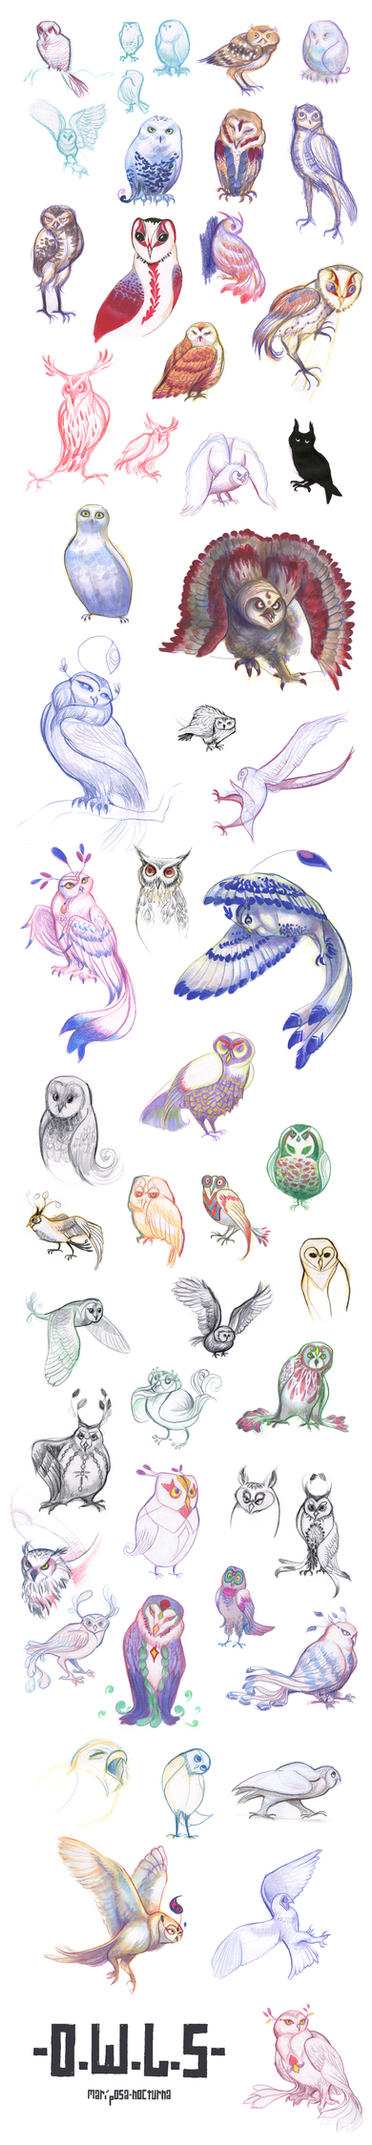 tumblr sketchdump : owl design by mariposa-nocturna